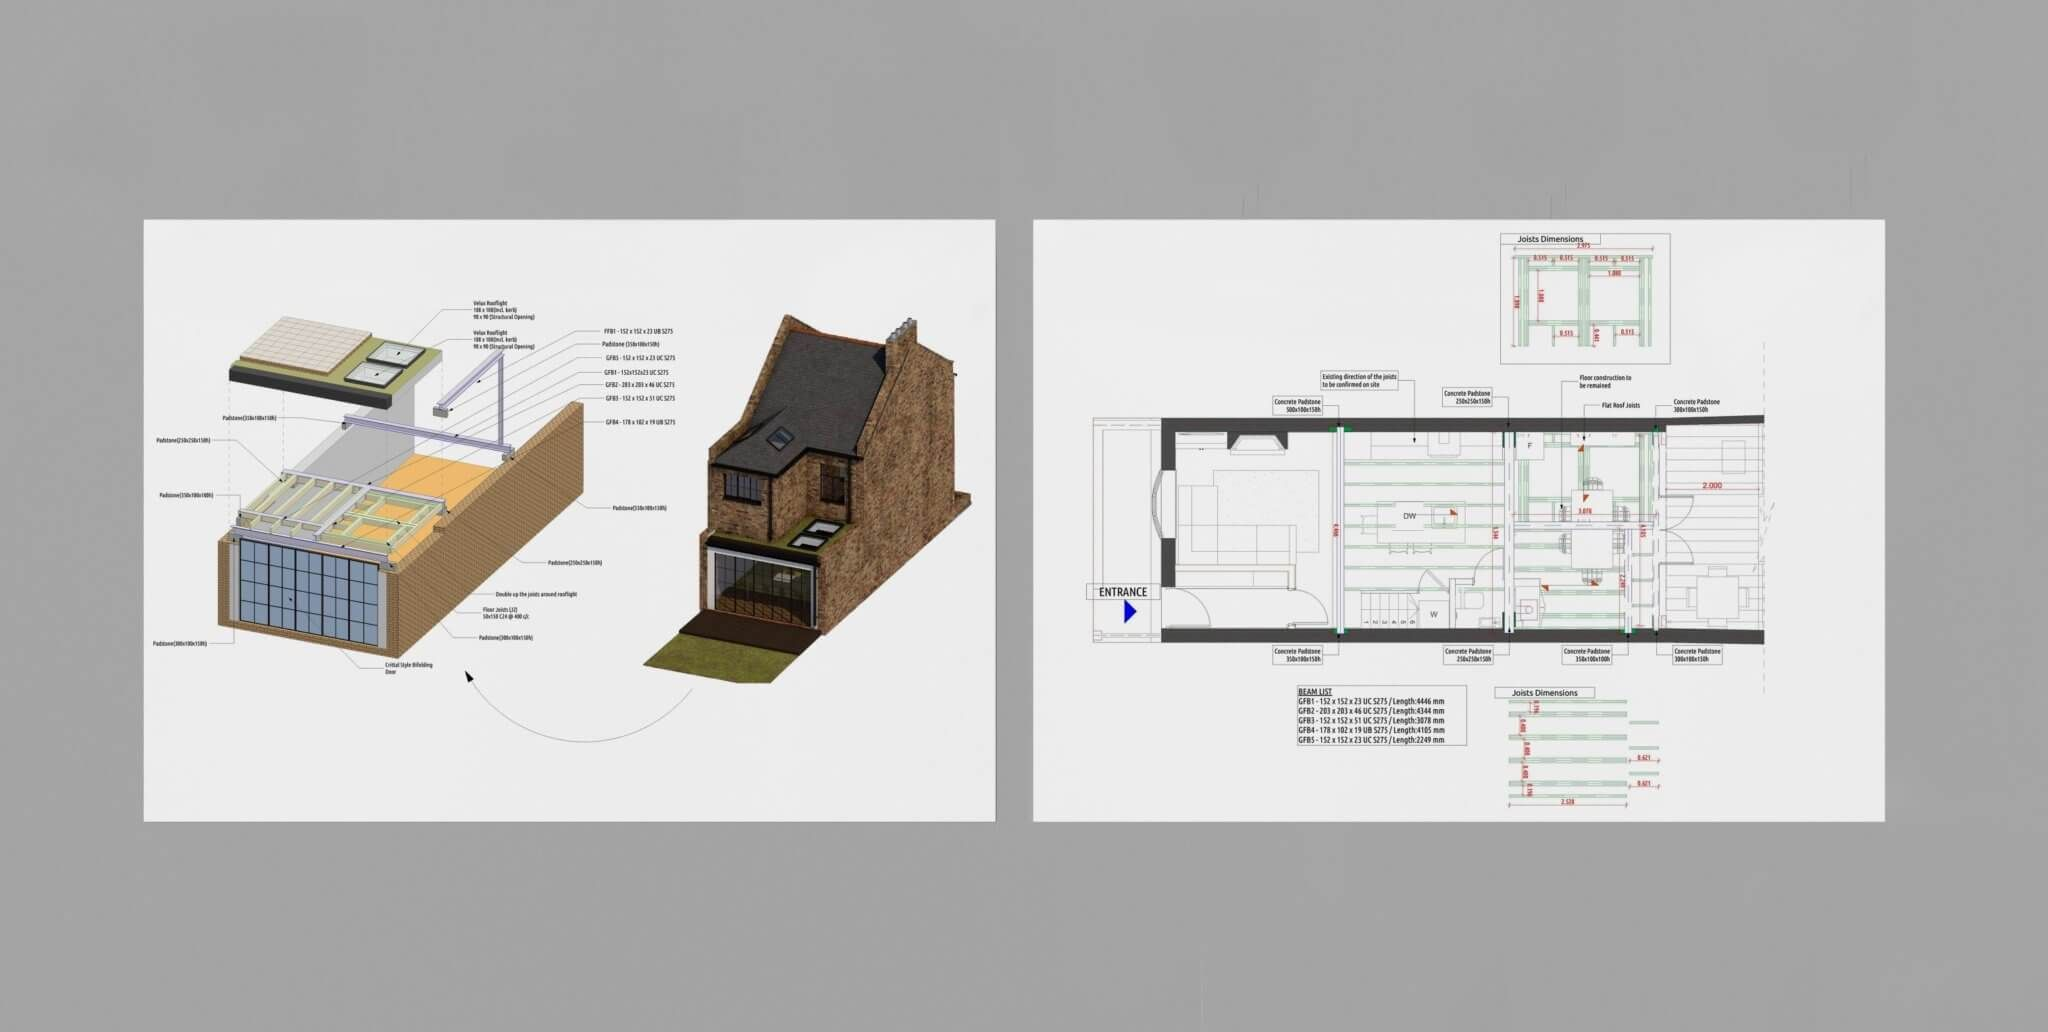 Wraparound Extensions How To Design Build Yours And Get Planning Permission Urbanist Architecture London Architects